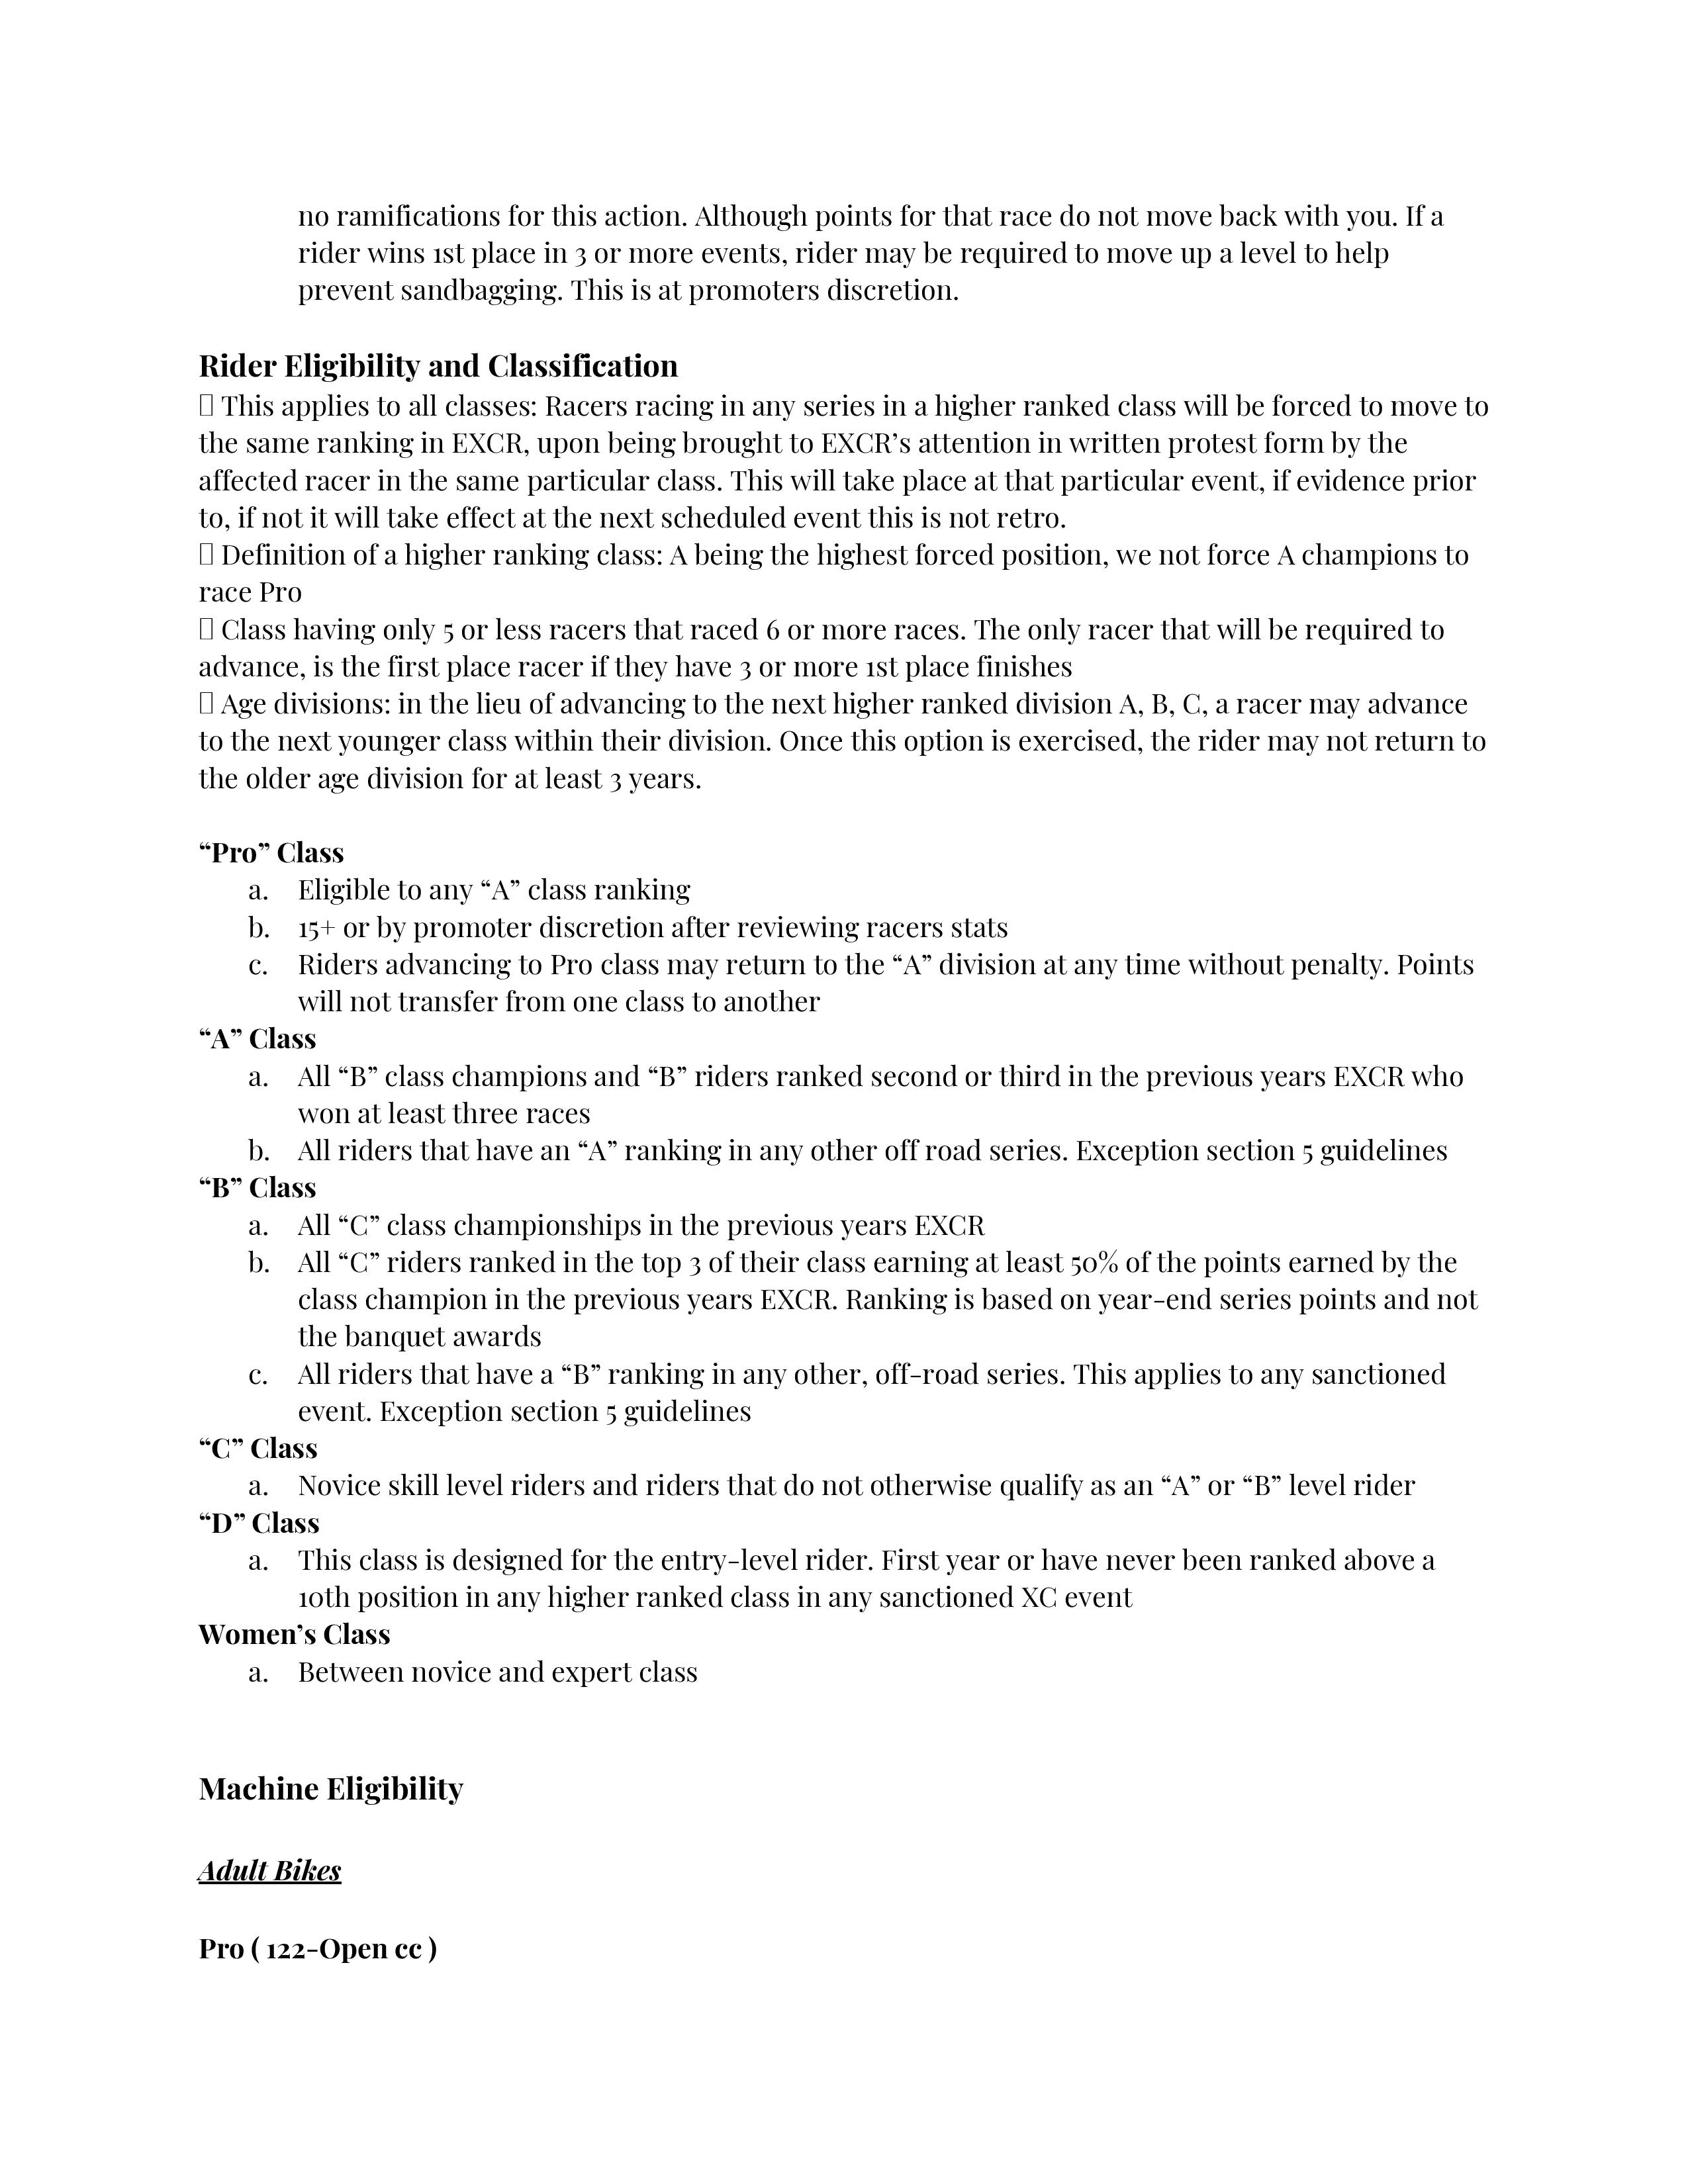 Complete Rules-page-003